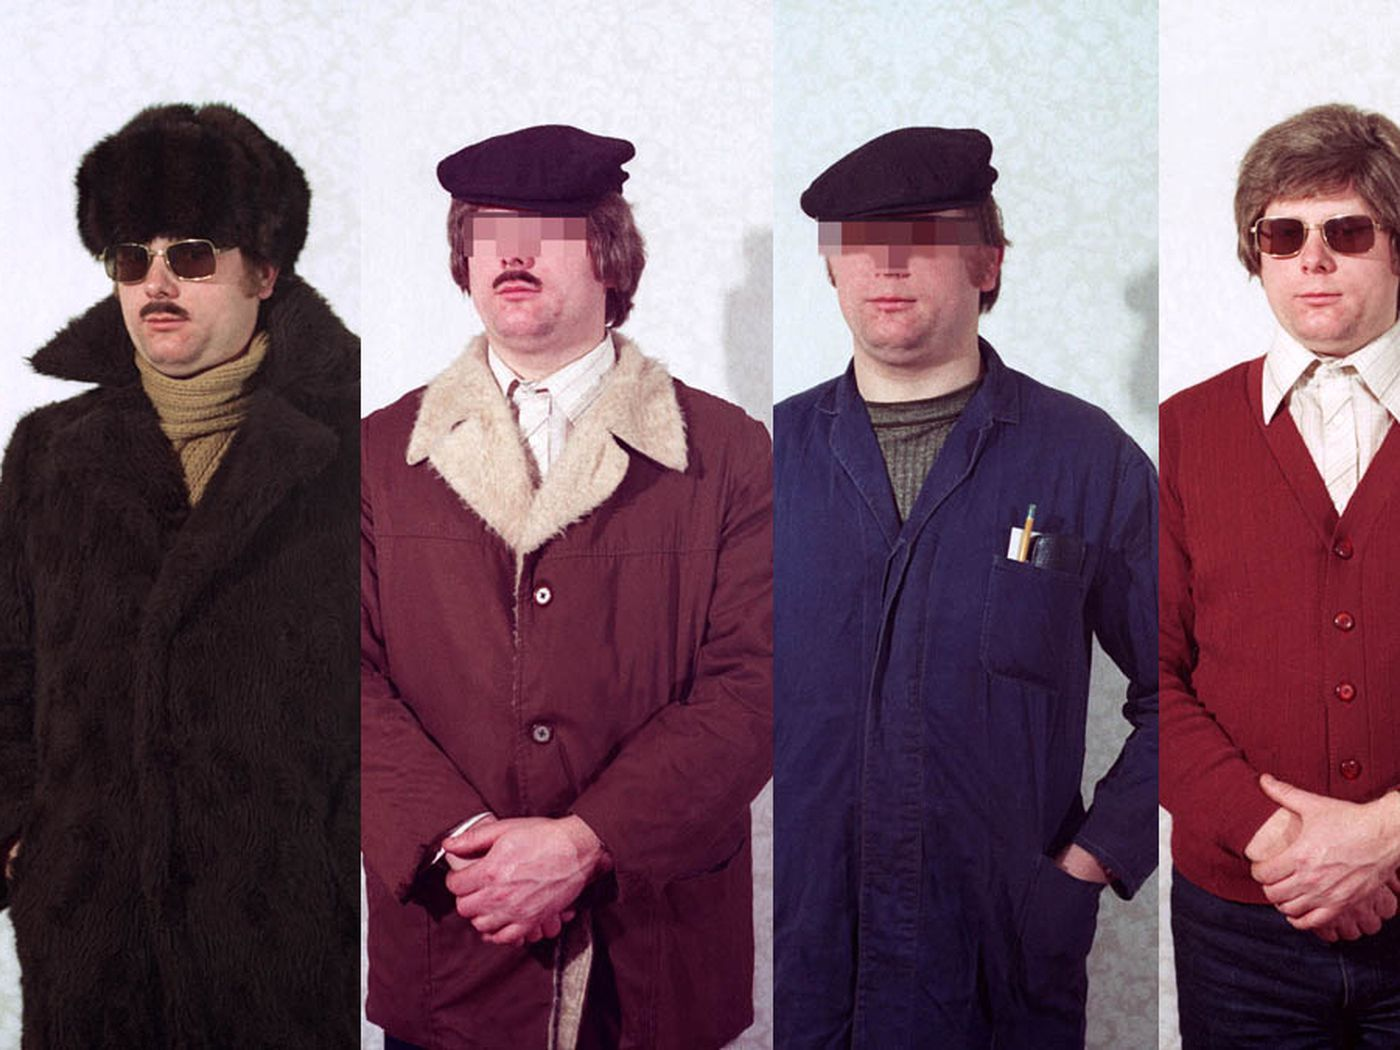 The declassified fashions of East German spies - The Verge